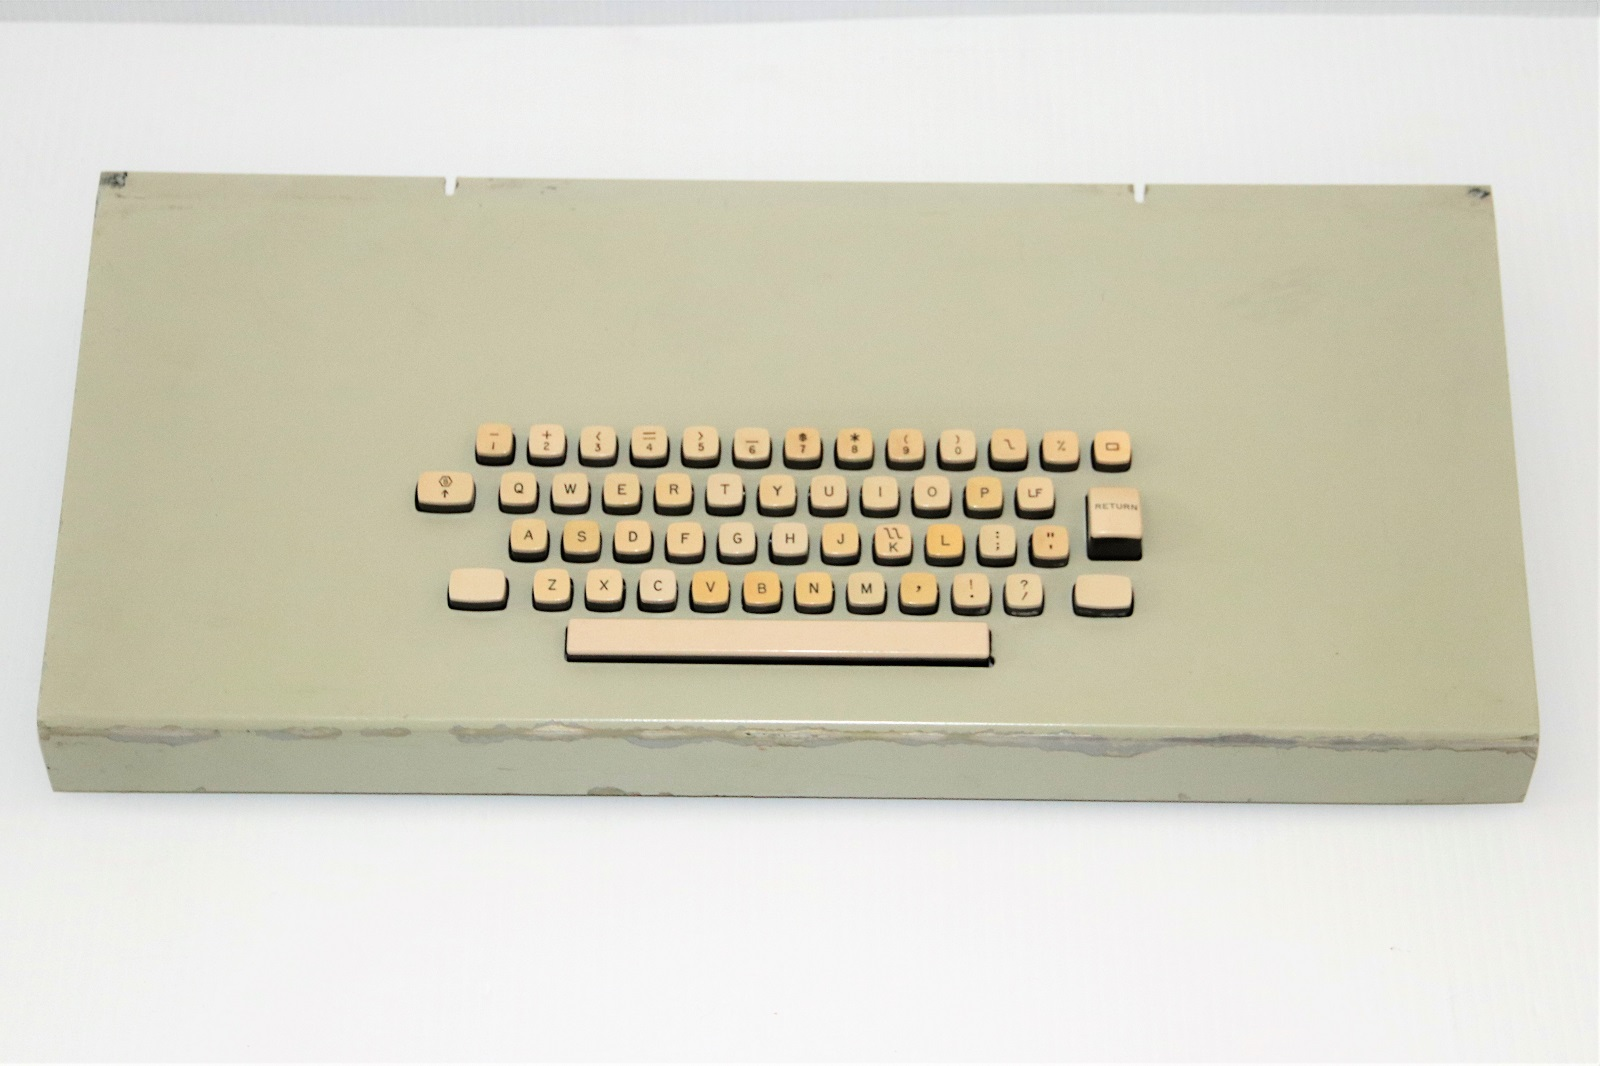 Univac keyboard - top.JPG